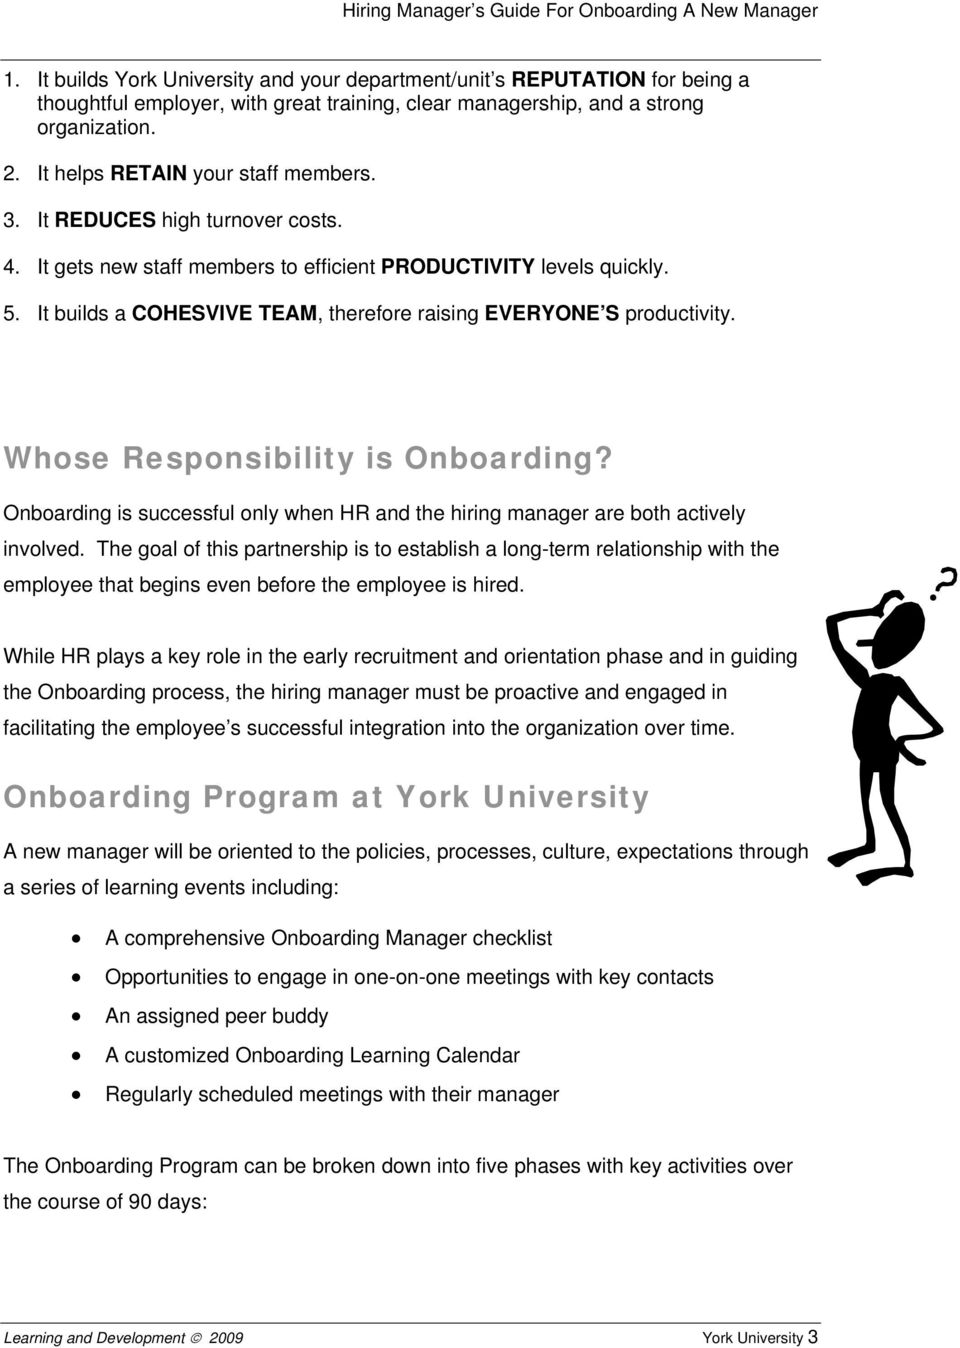 It builds a COHESVIVE TEAM, therefore raising EVERYONE S productivity. Whose Responsibility is Onboarding? Onboarding is successful only when HR and the hiring manager are both actively involved.